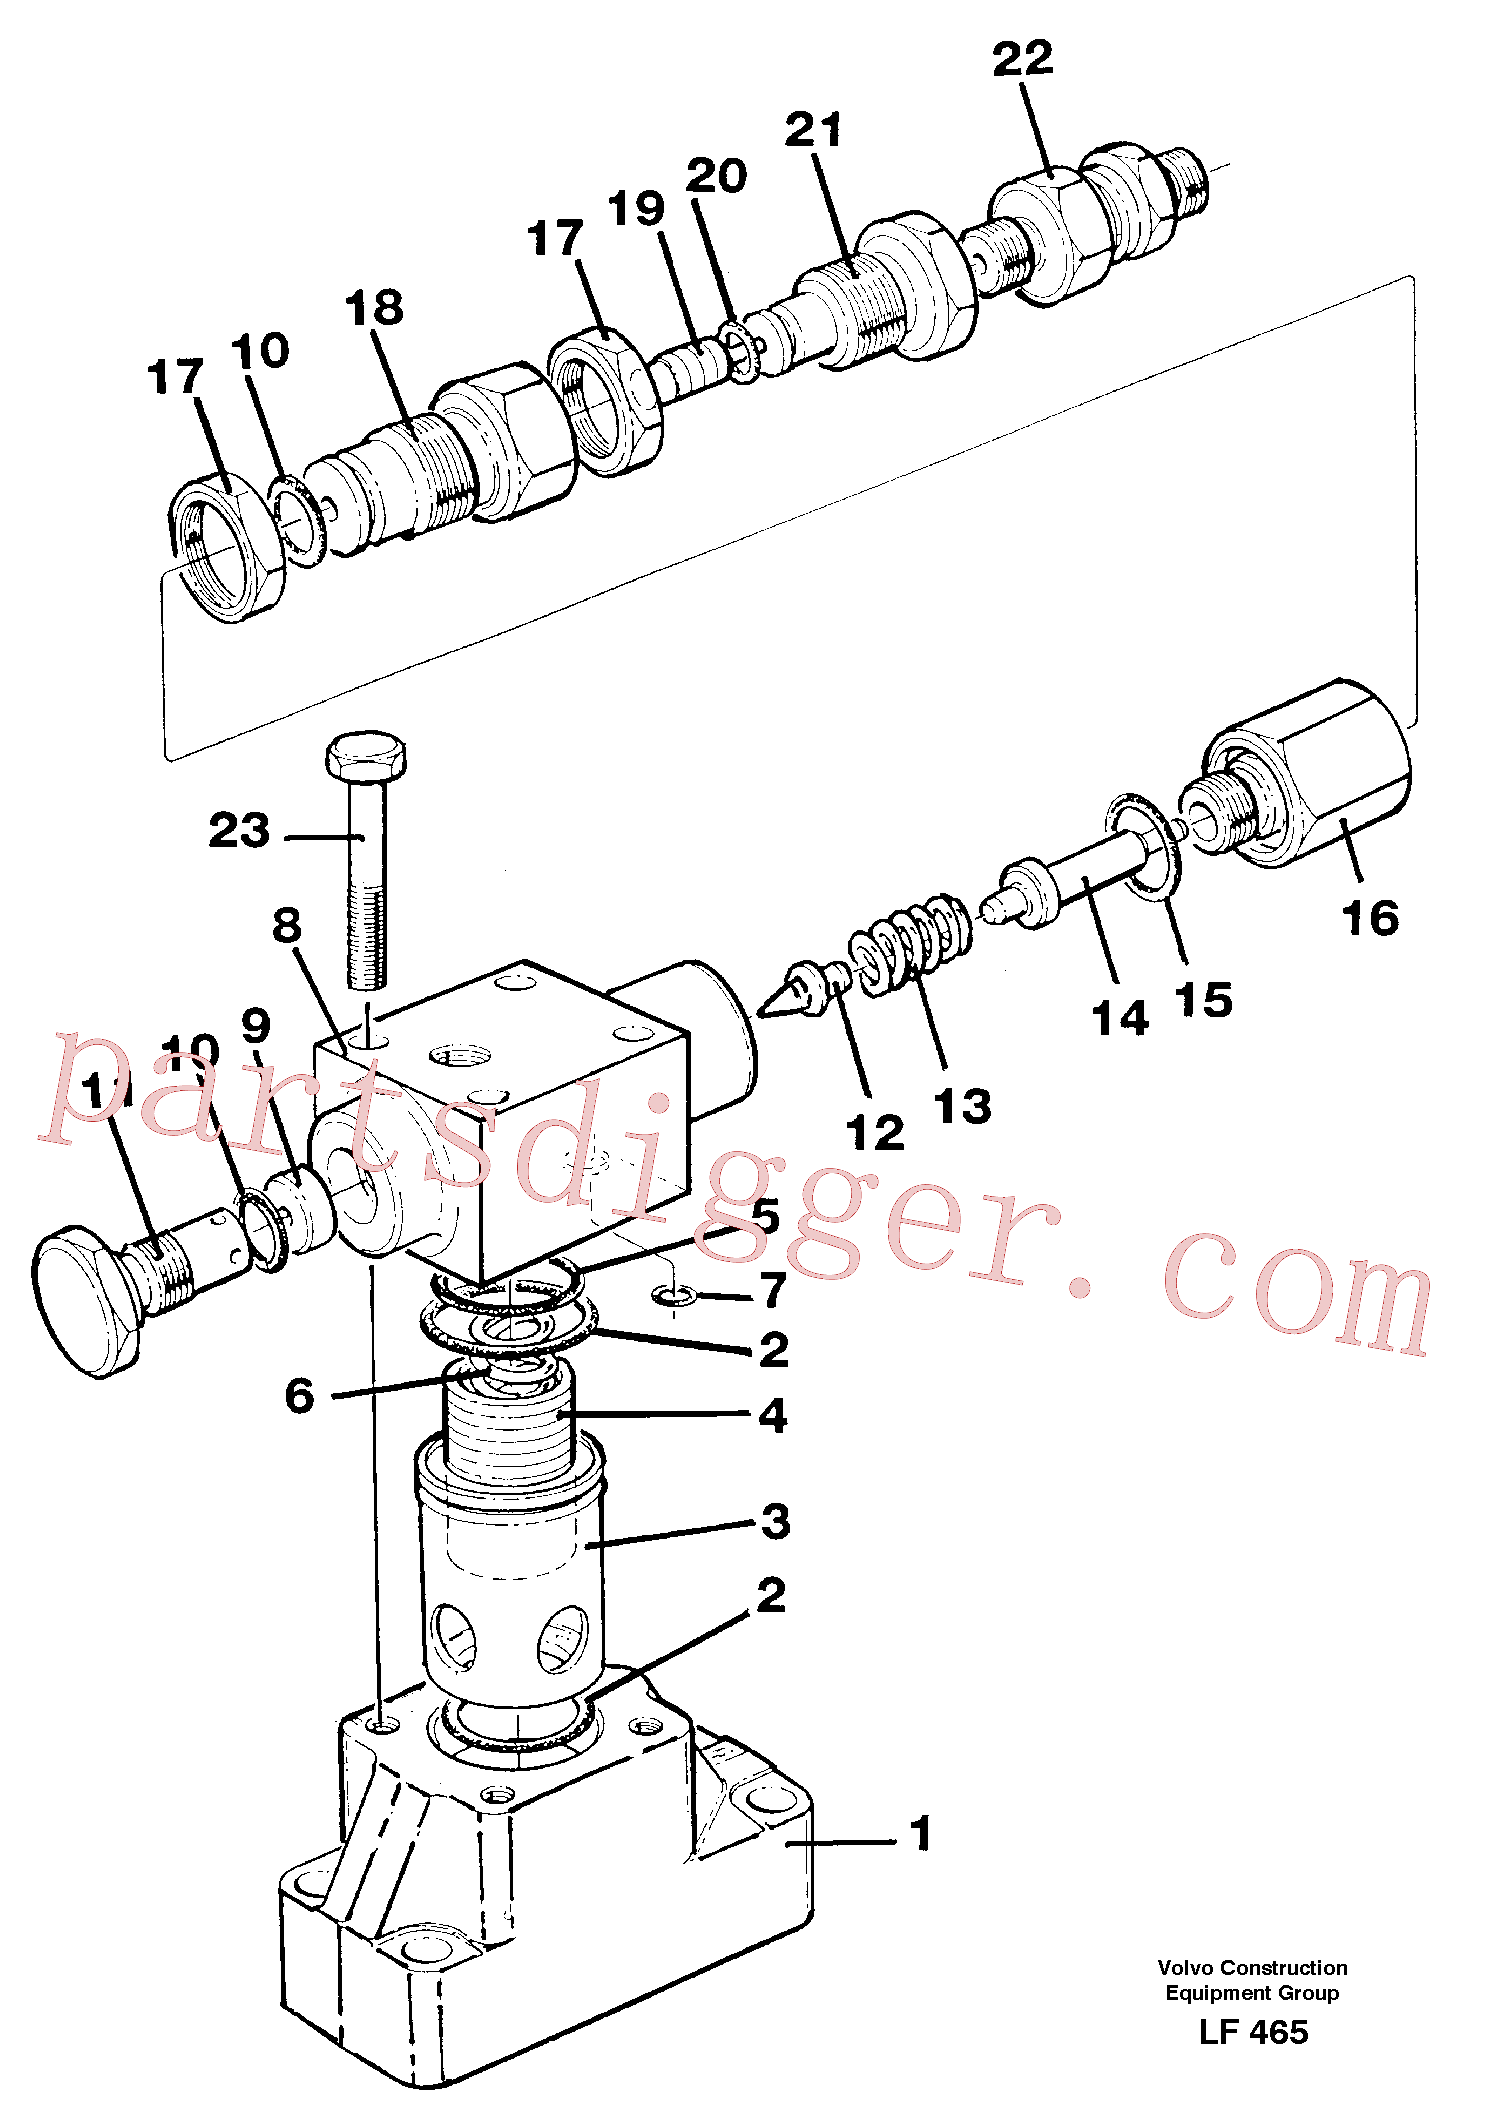 VOE14235612 for Volvo Pressure limiting valve(LF465 assembly)